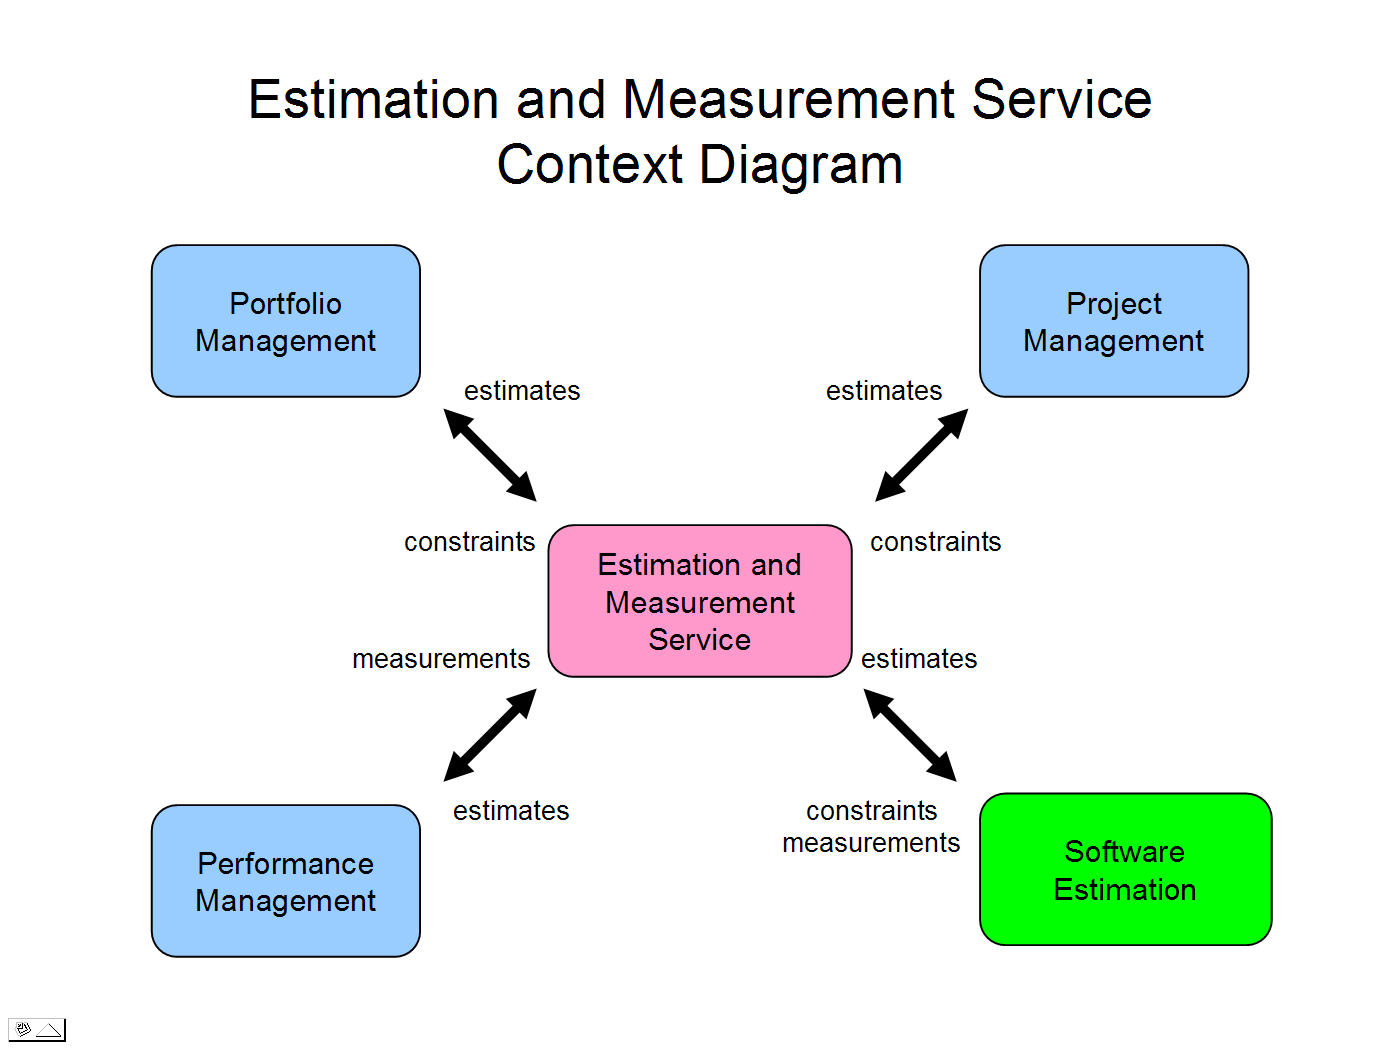 ems   rest api architecture   estimation and measurement   open    em service context diagram